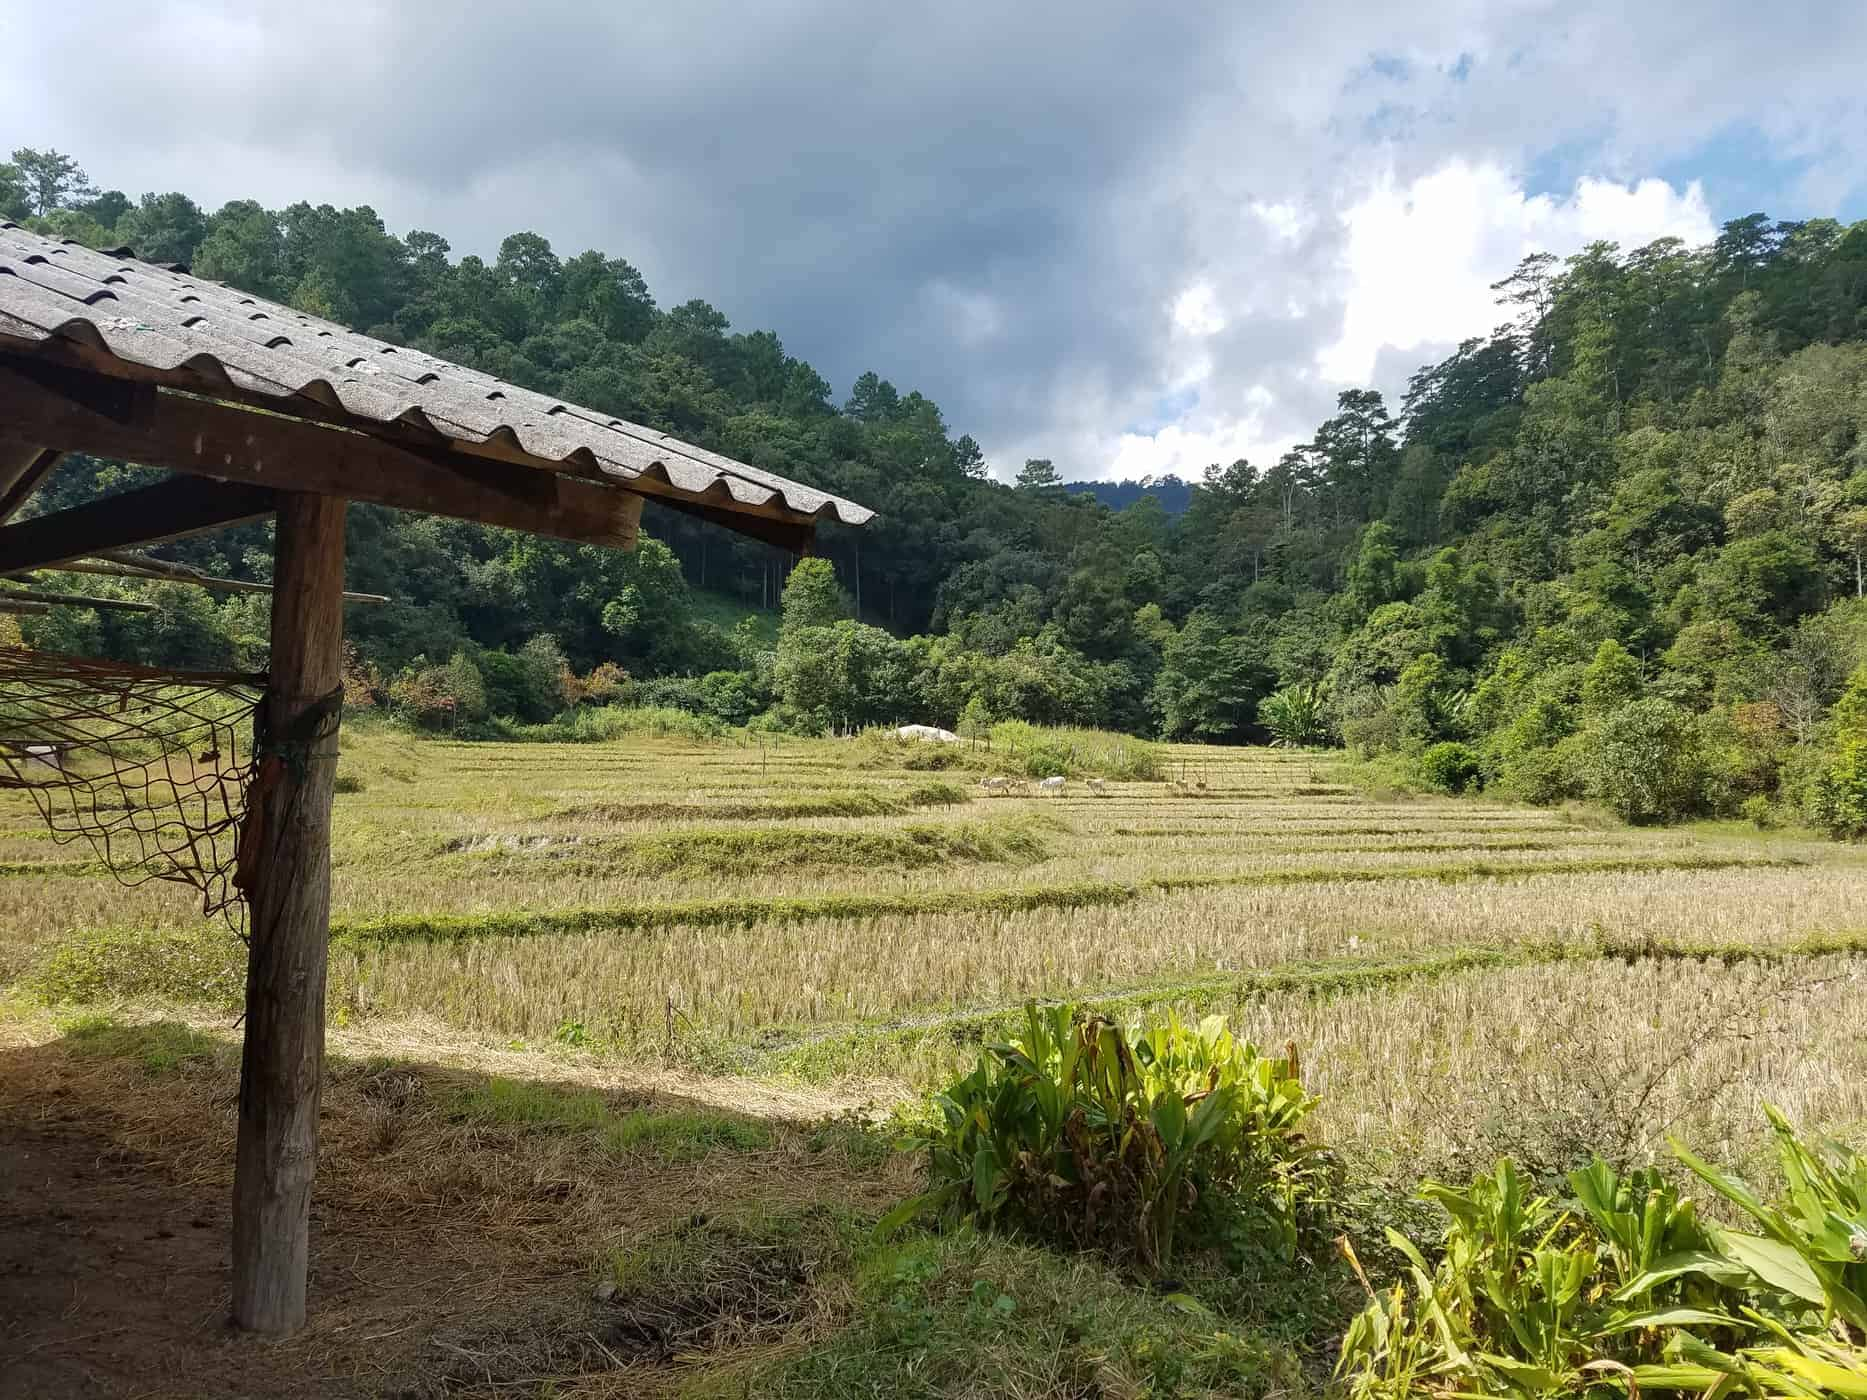 Rice fields are a common sight along the way on a Doi Inthanon Trek.